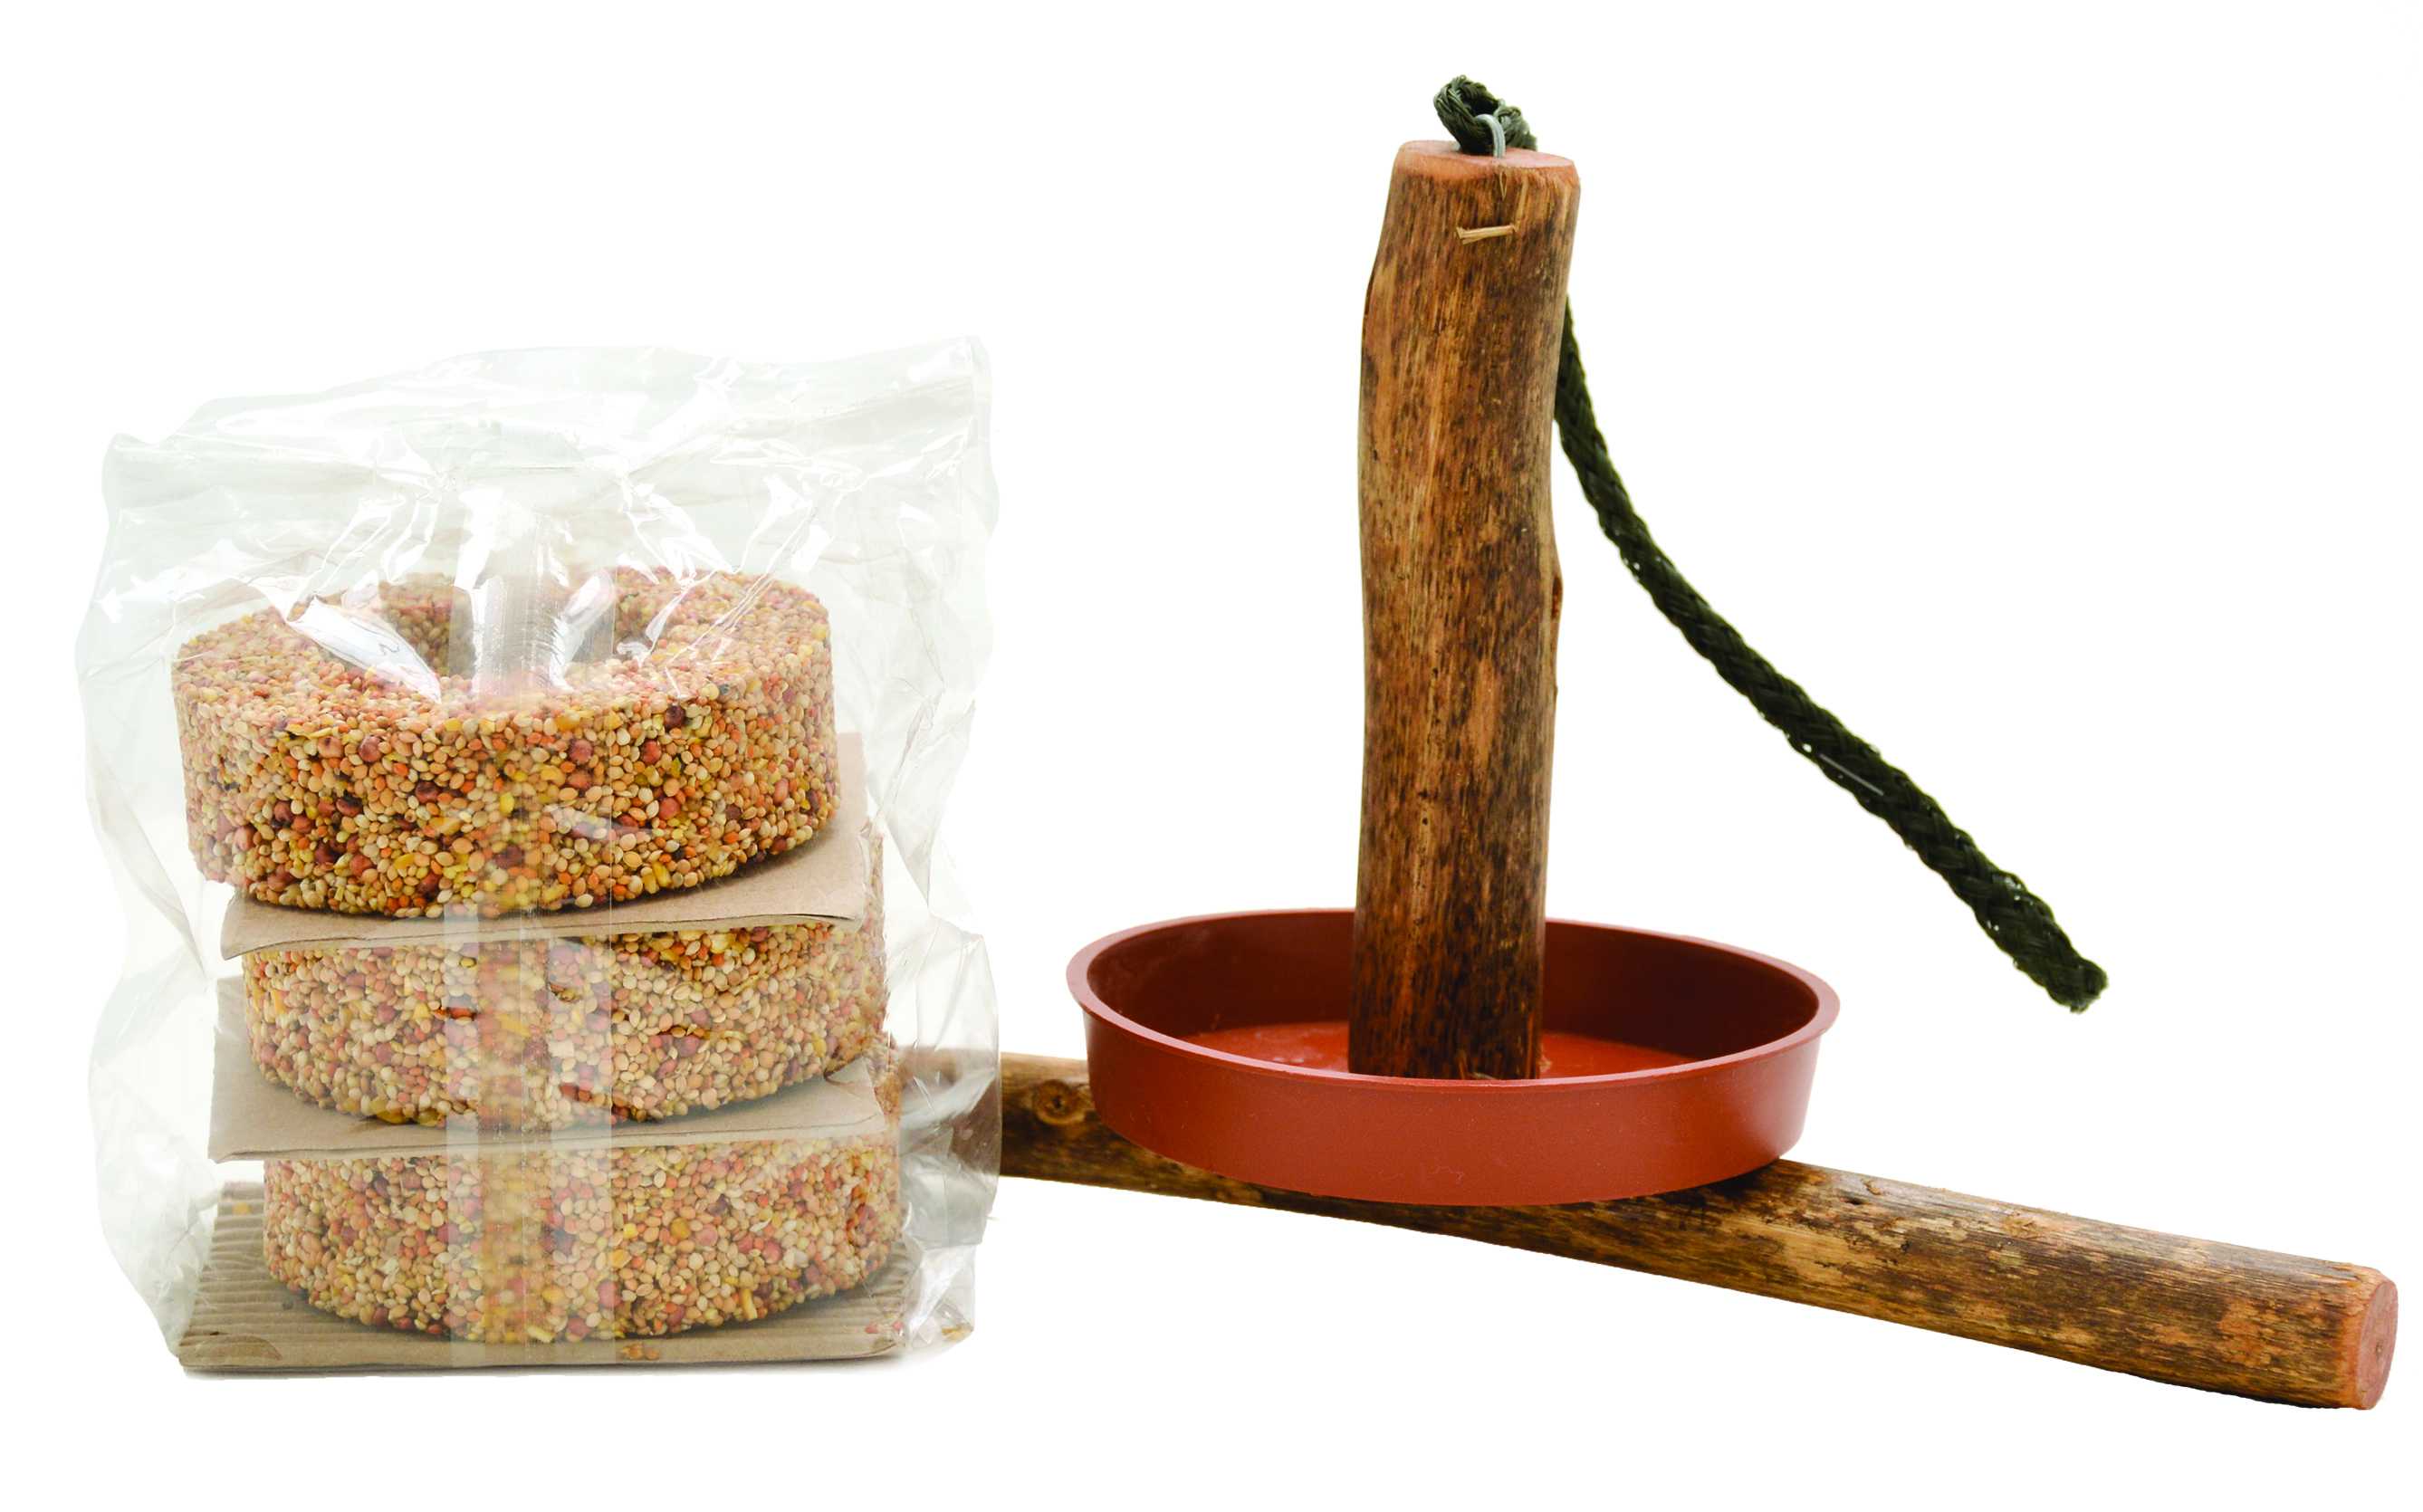 lifestyle home garden bird feeder food seed johannesburg gauteng nursery plant shop feathered friends